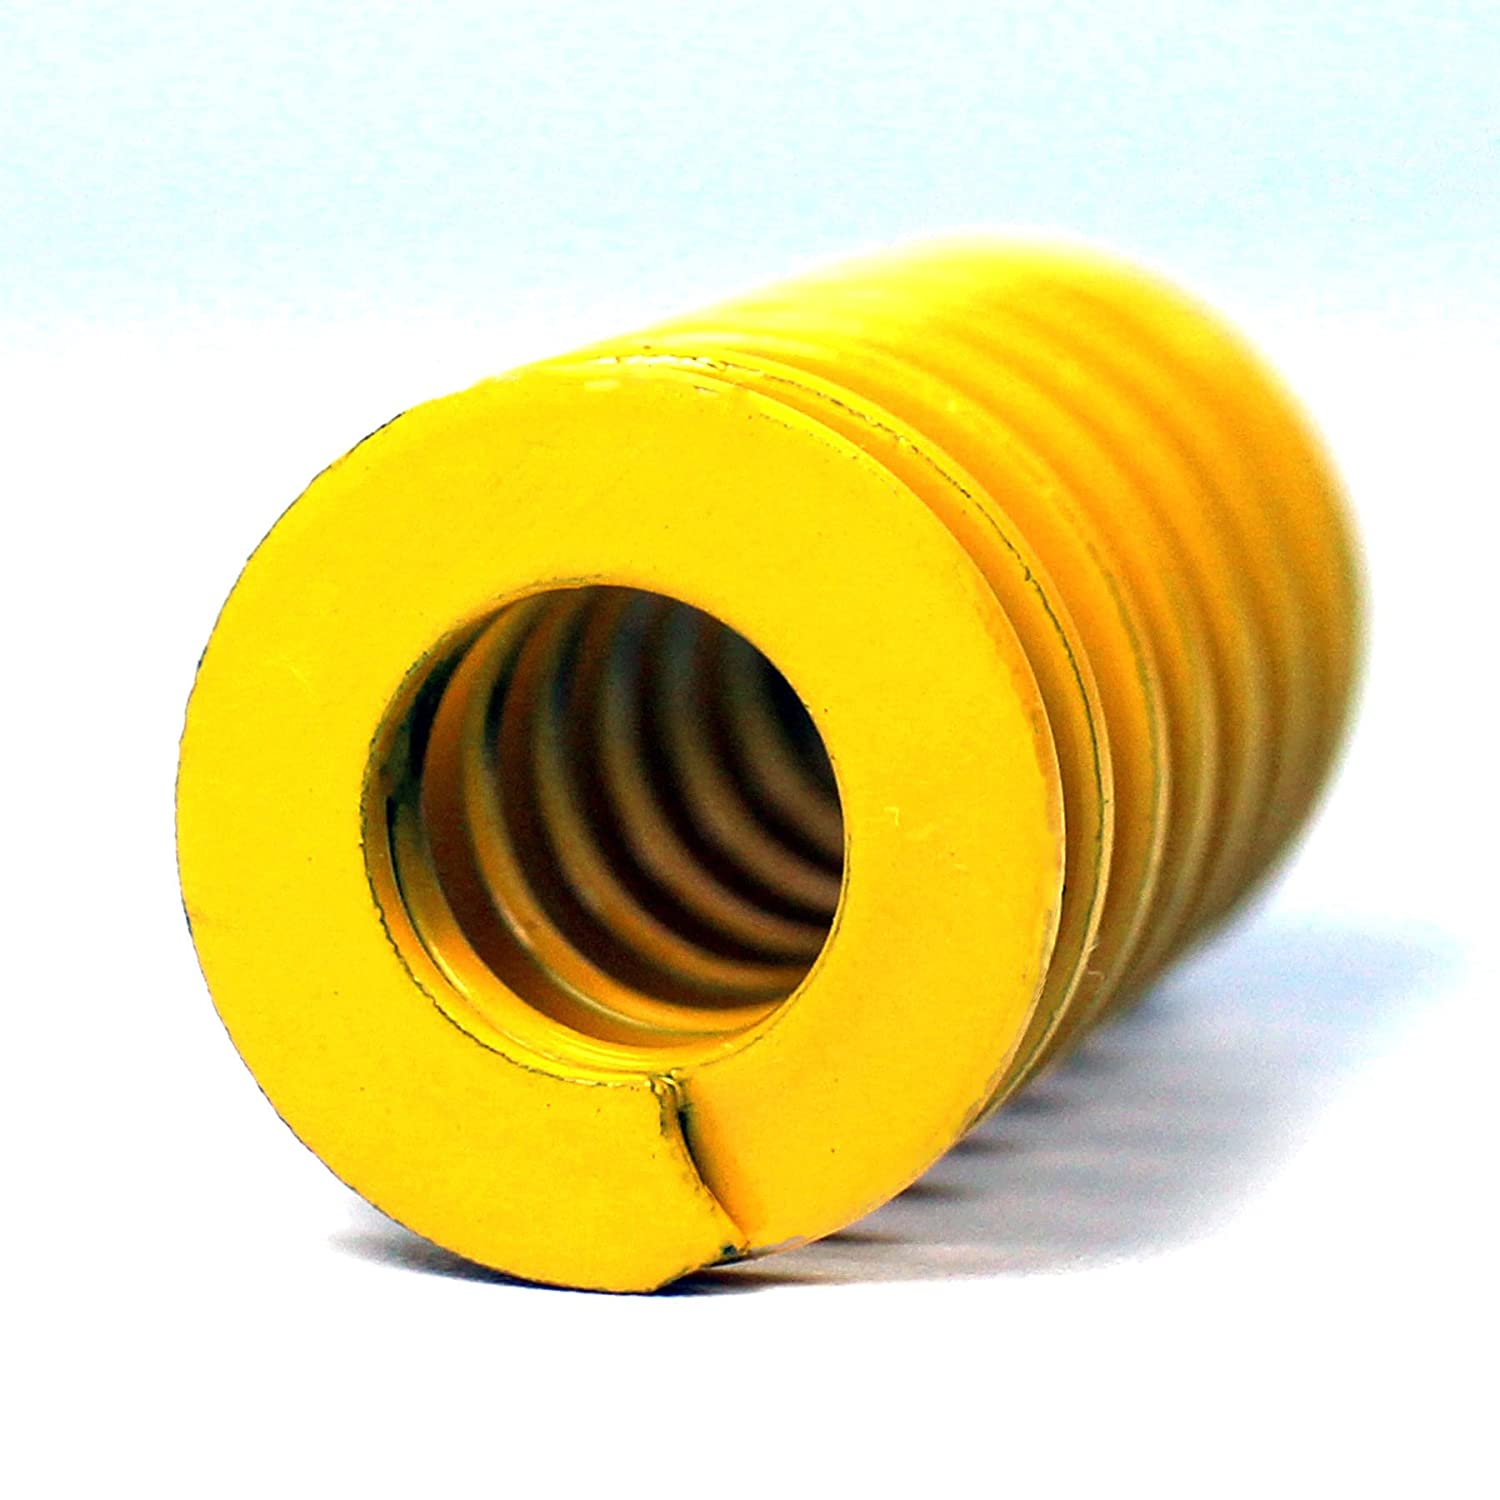 5Pcs OD6 x ID3 x L55mm Extra Light Load Yellow Mould Die Spring